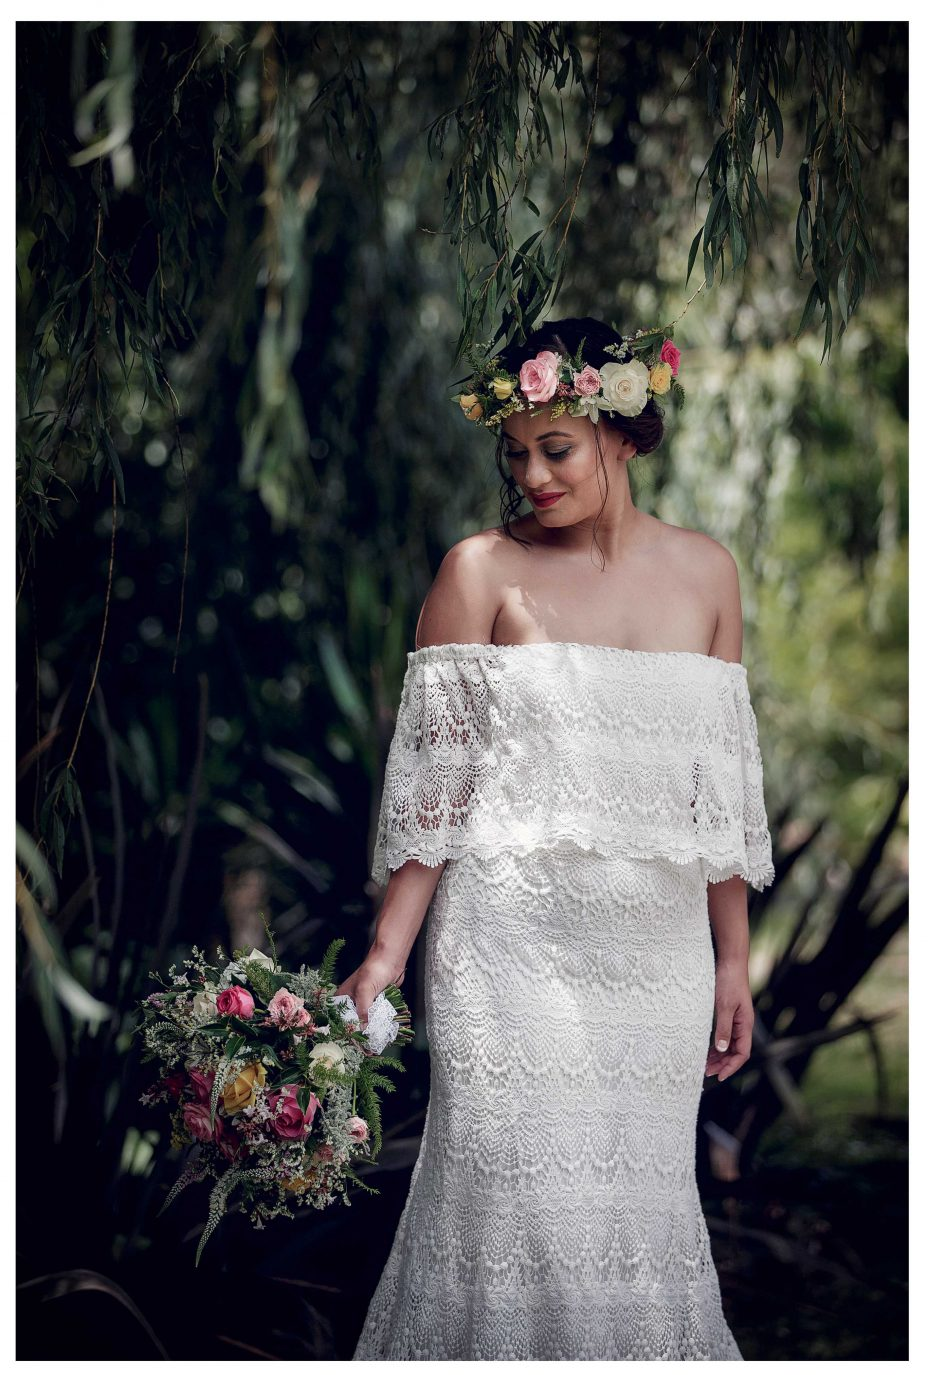 Bride in white lace top wedding dress in Kumeu garden, with wedding bouquet, Leaf and honey flowers